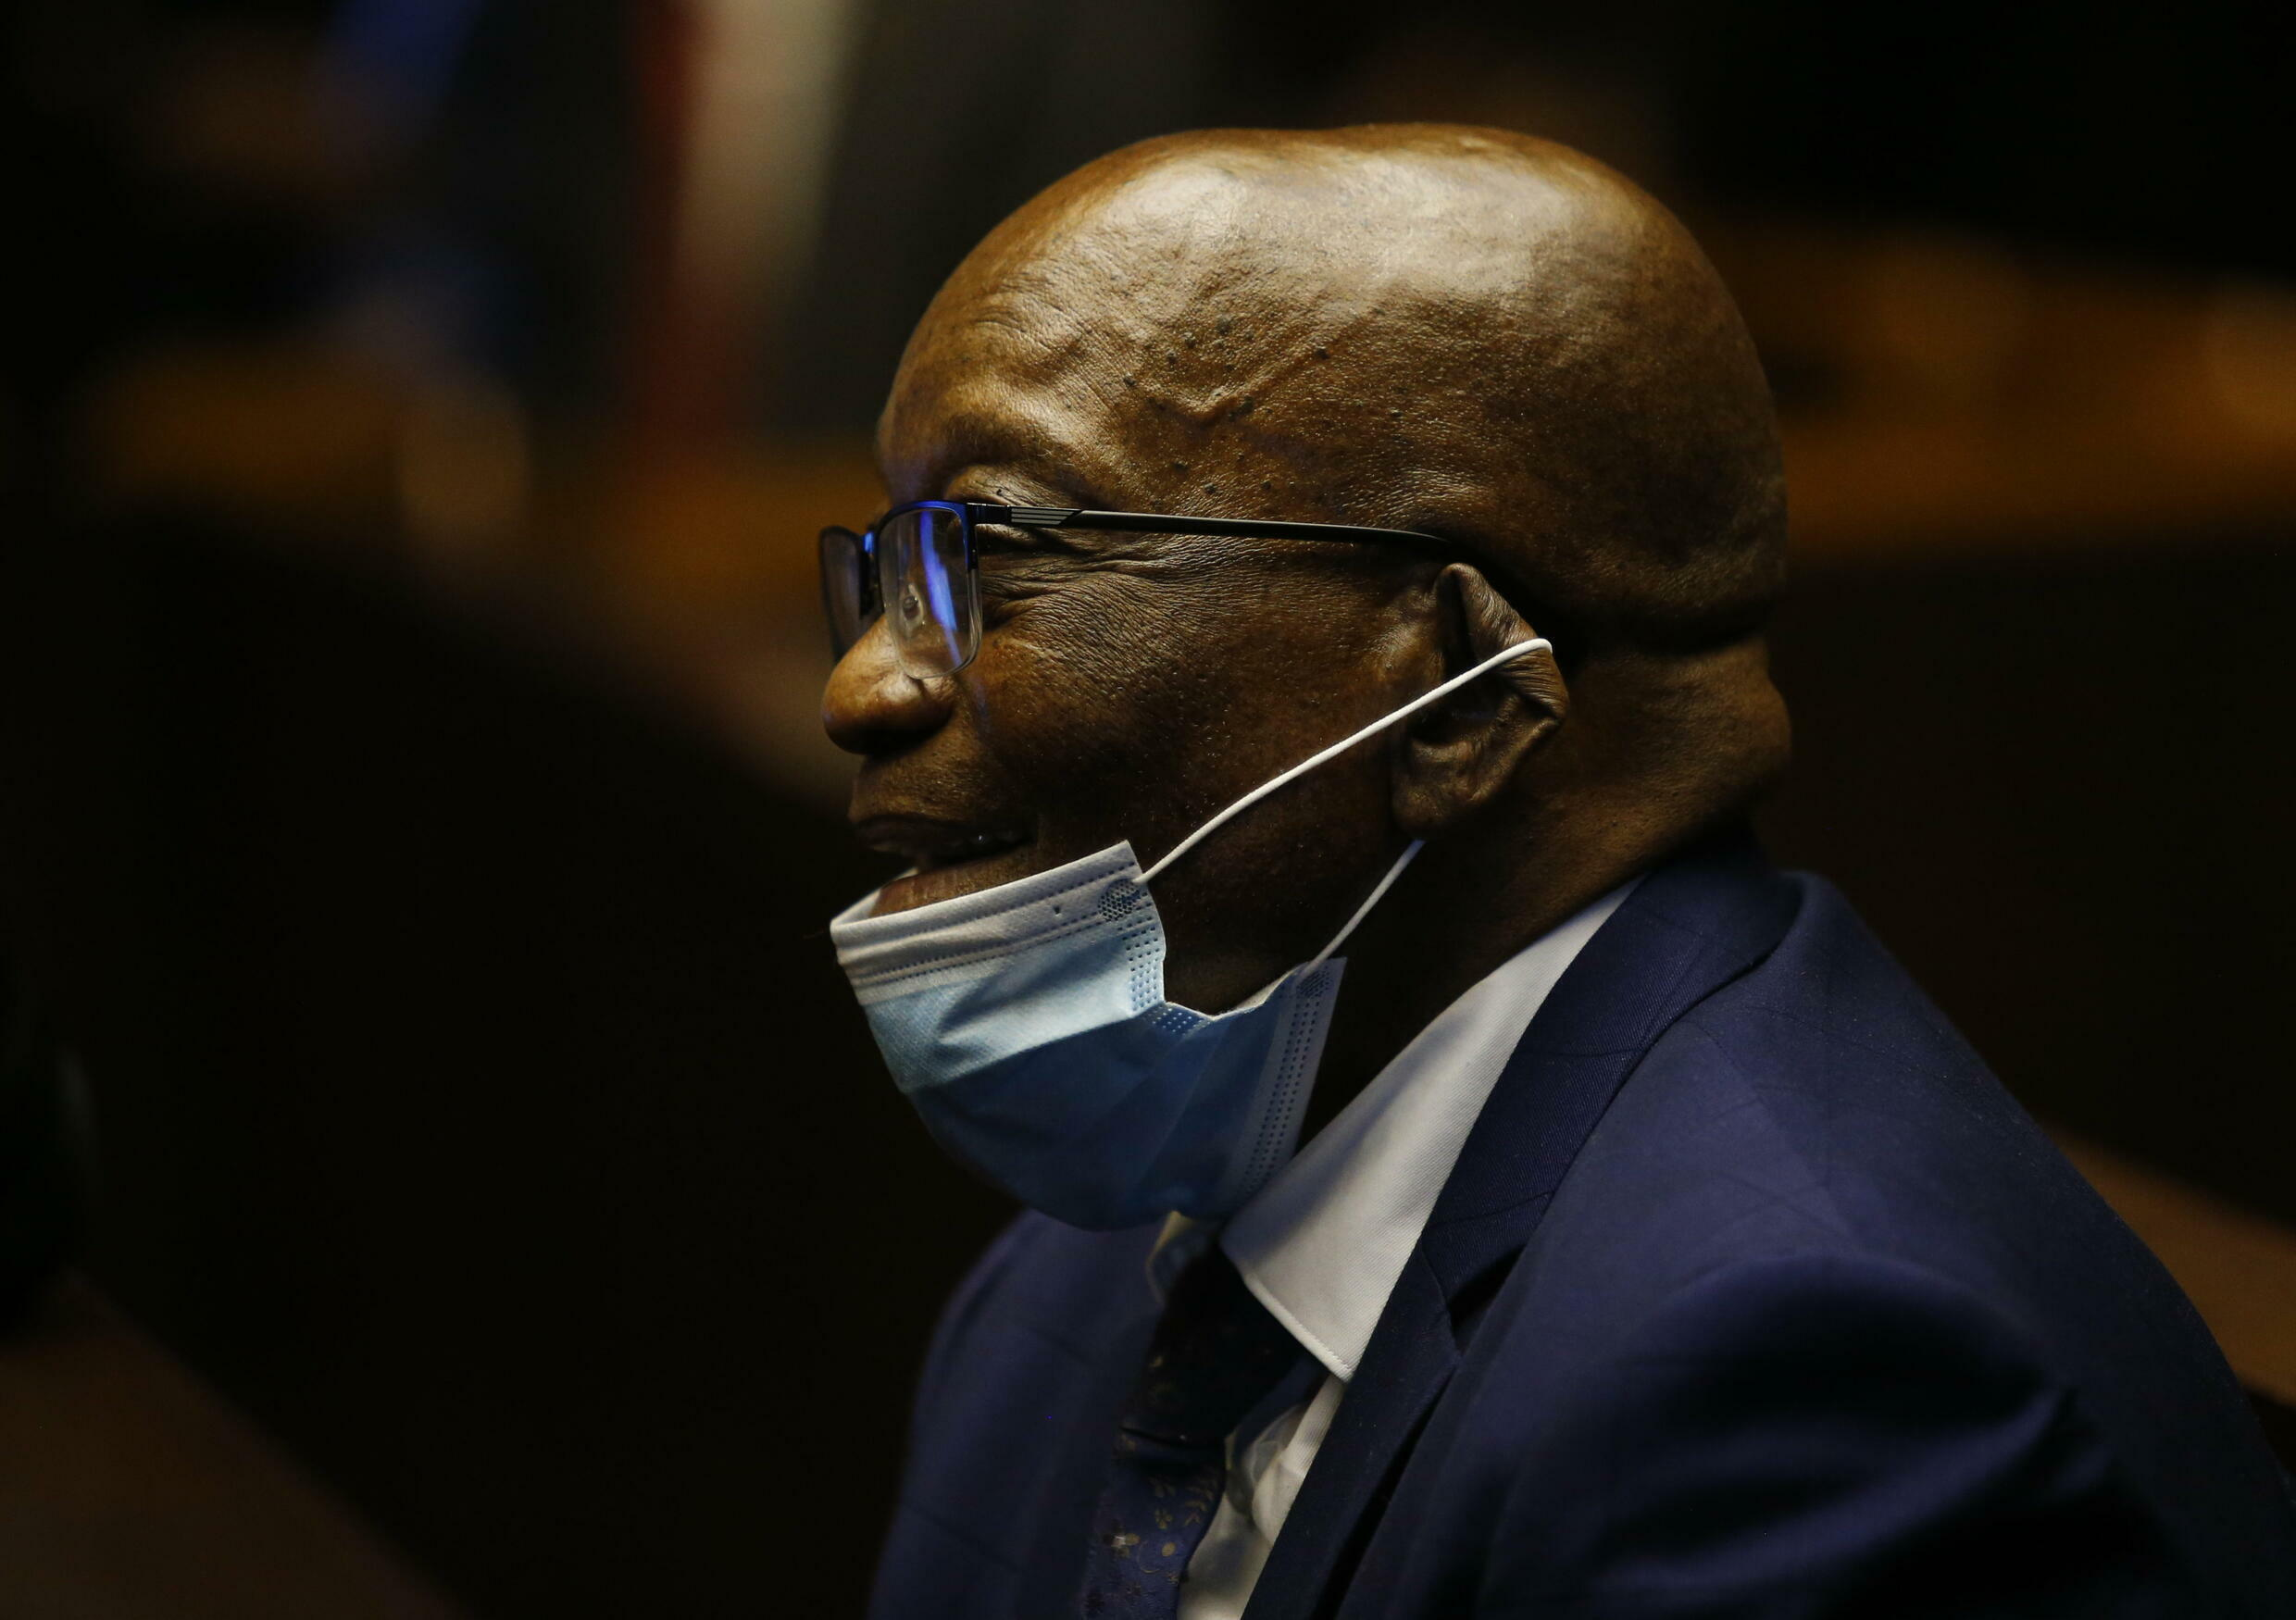 Jacob Zuma, 79, started off as a herdboy and rose to become South Africa's fourth president under the banner of the ruling African National Congress party